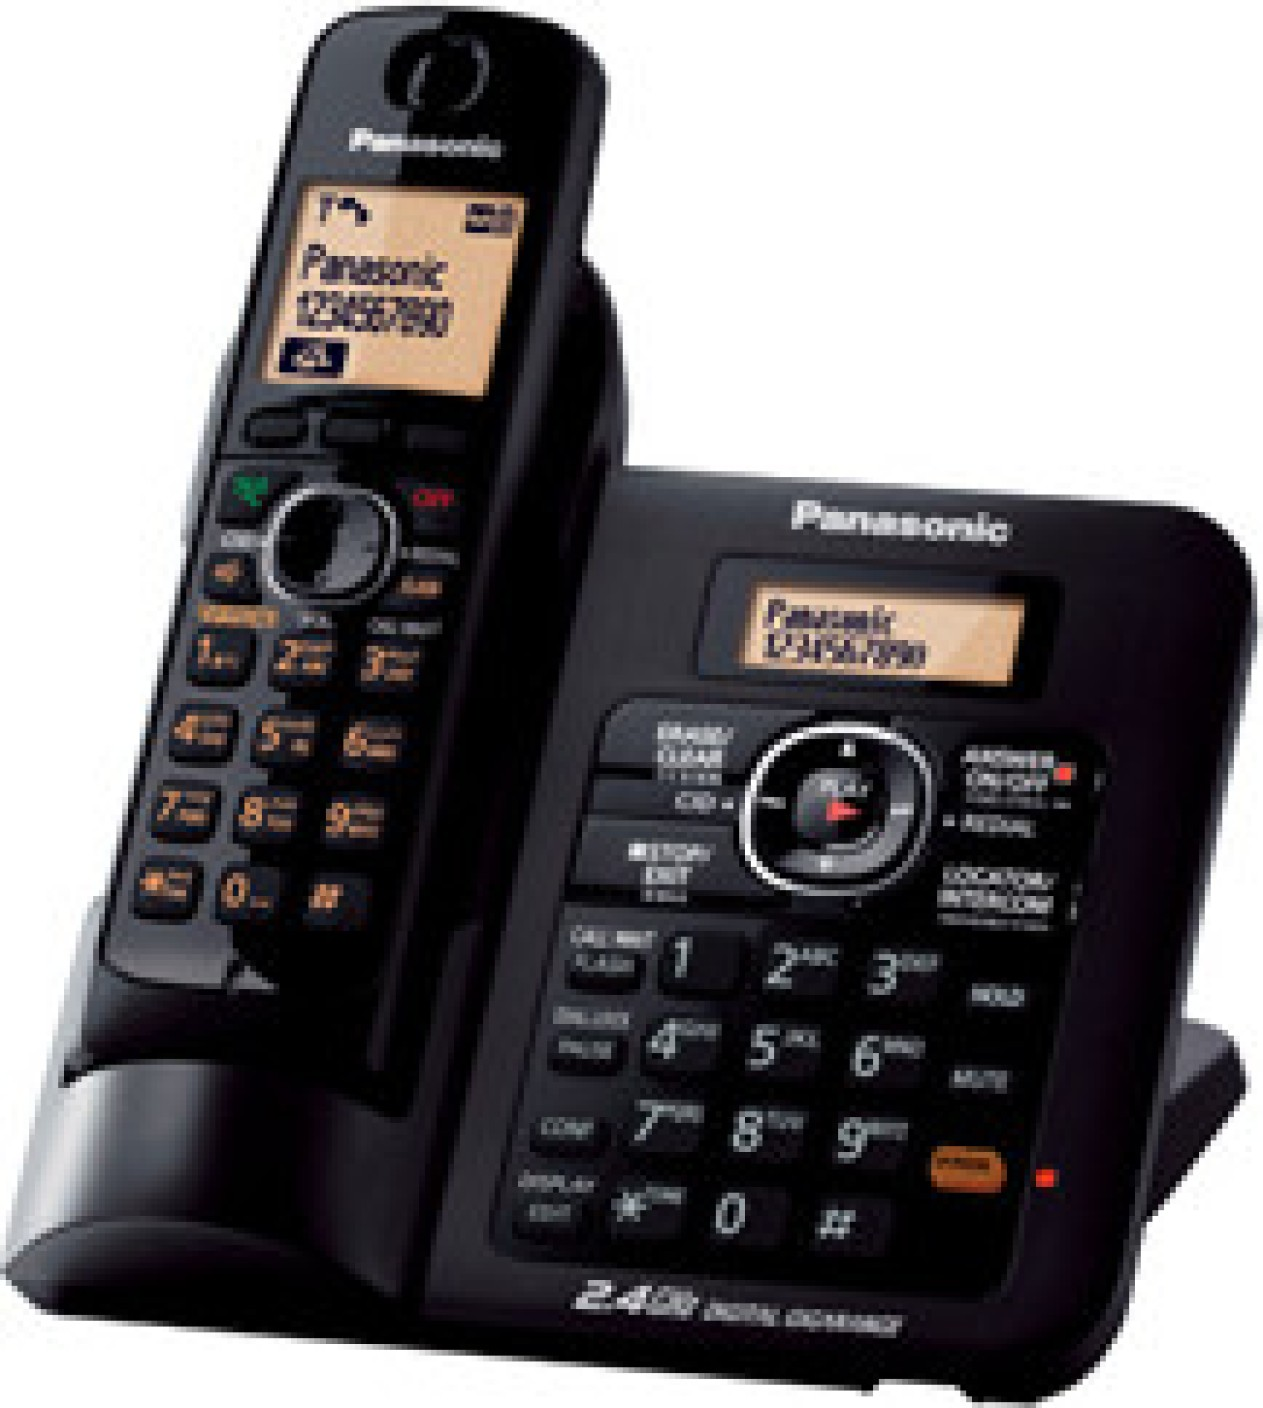 Panasonic Kxtg 3821sx Cordless Landline Phone Price In